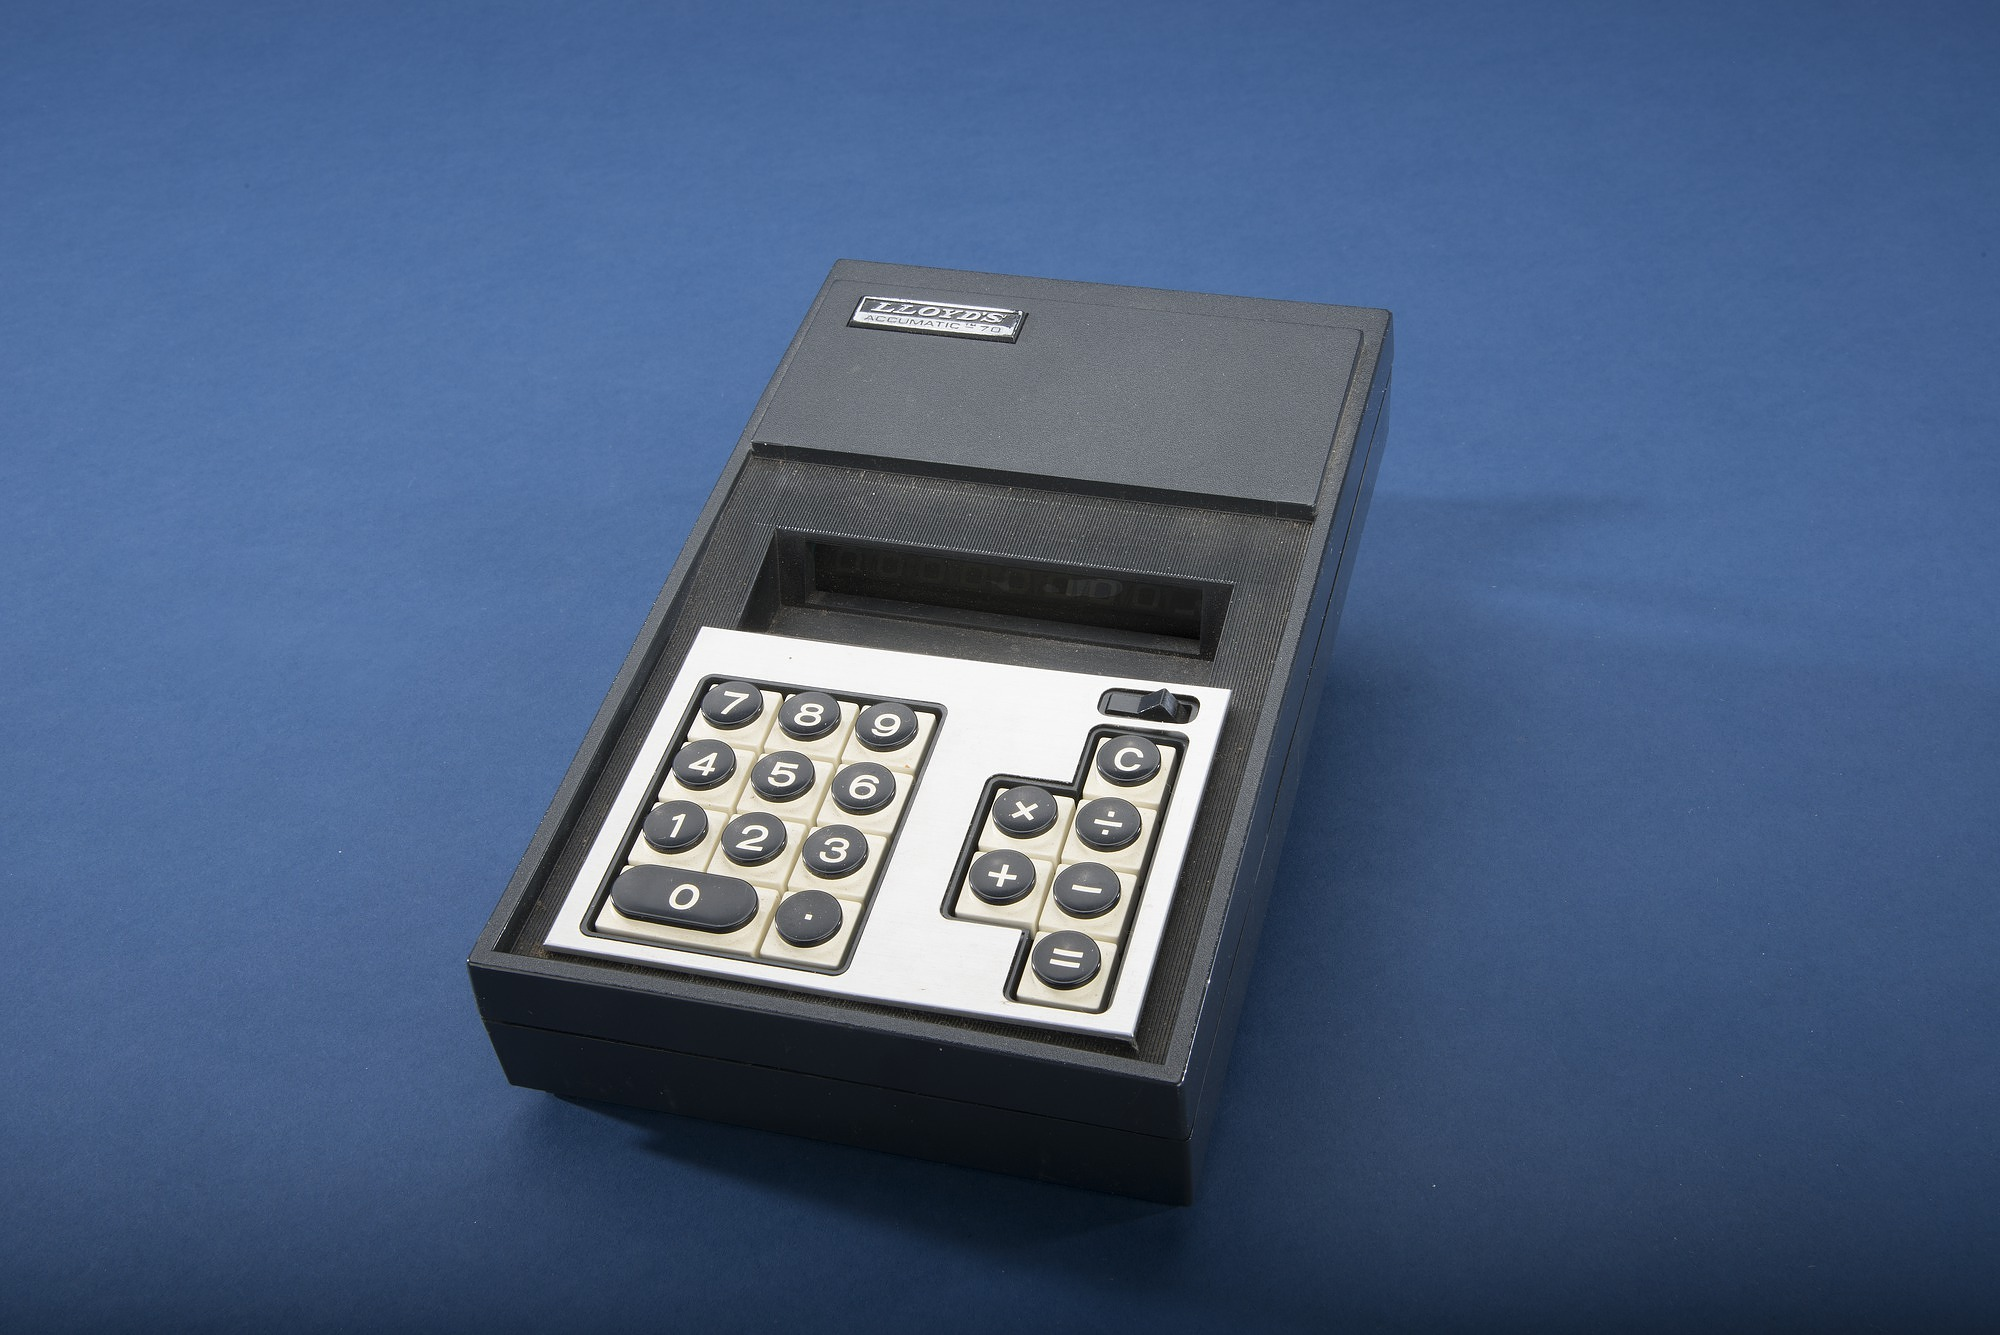 Lloyd's Accumatic 70 Model E752 Desktop Electronic Calculator